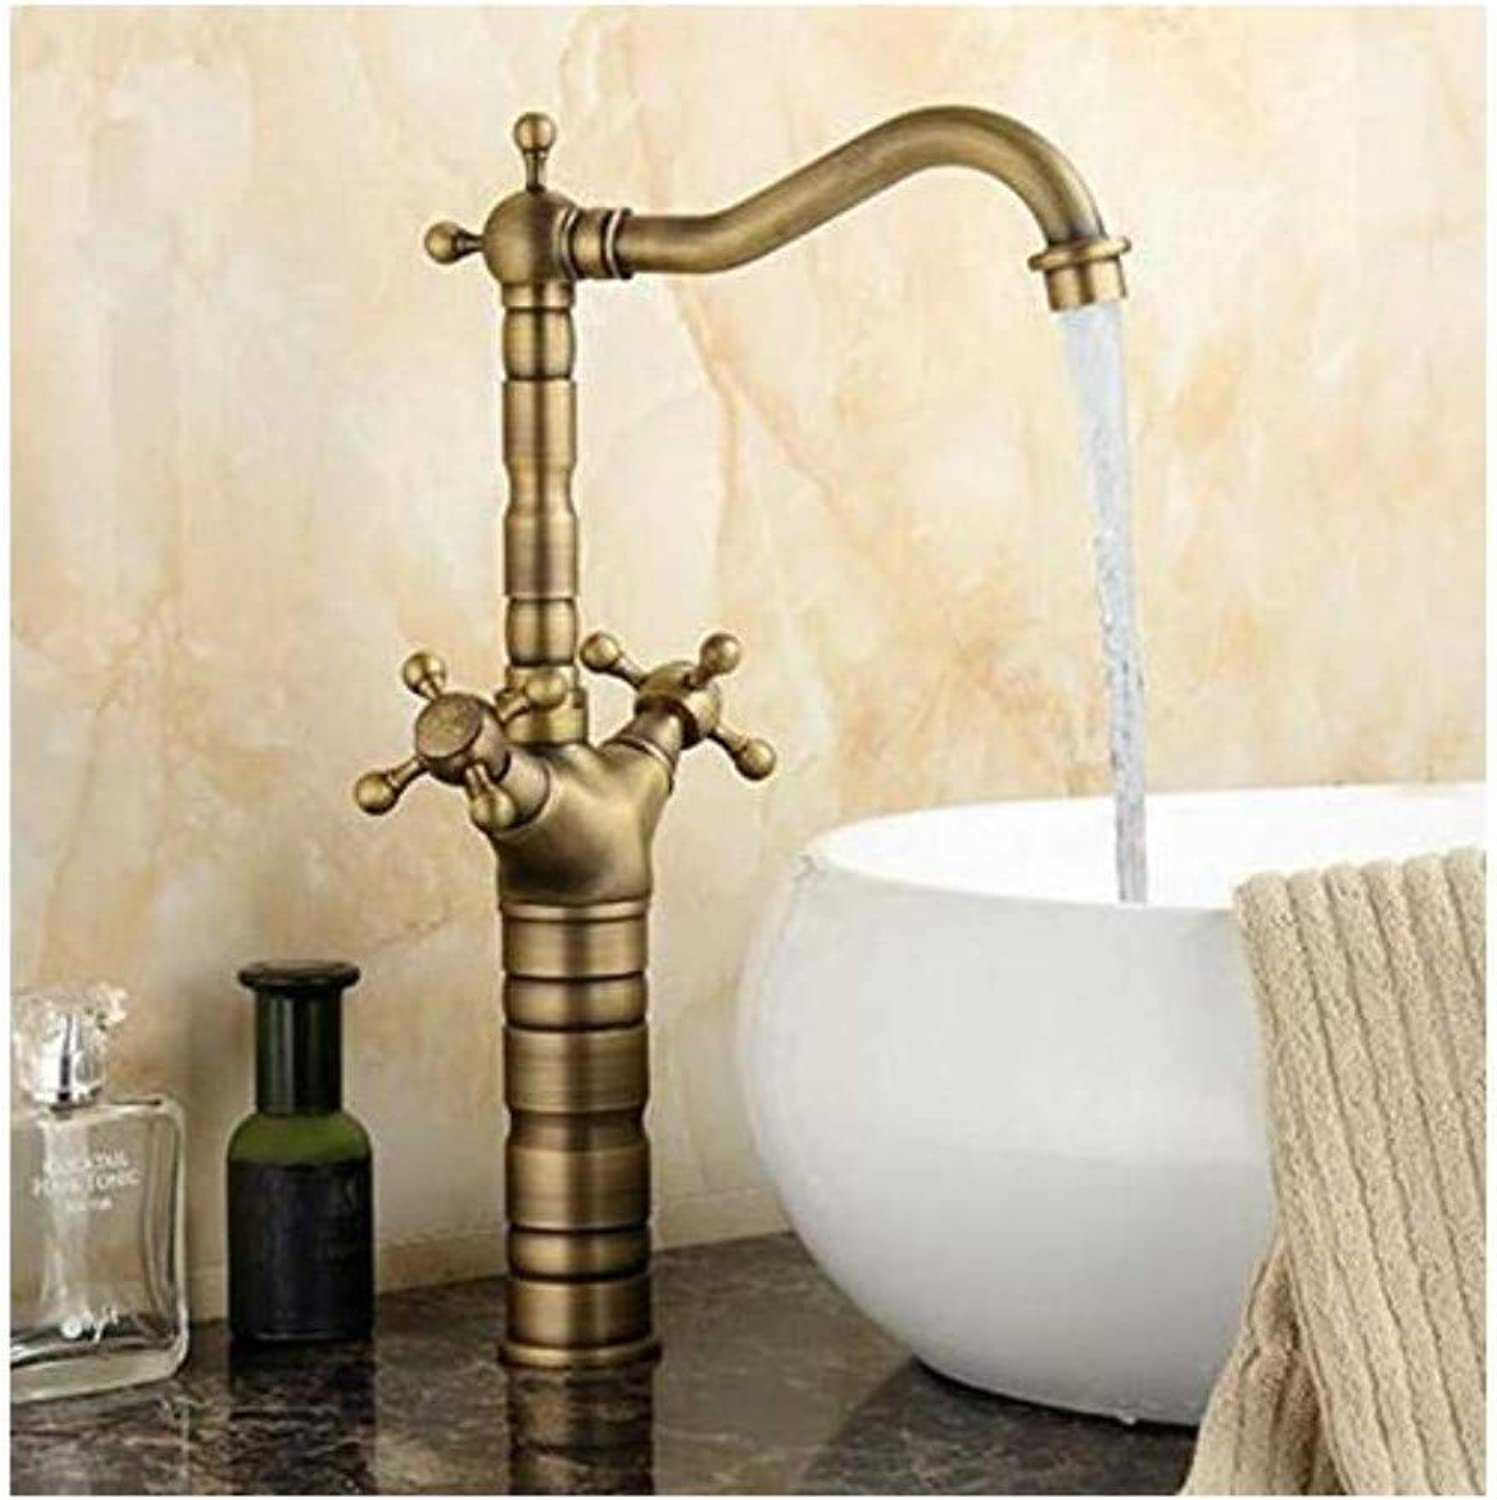 Modern Double Basin Sink Hot and Cold Water Faucet Tap Antique 360 Swivel Faucets 512A Double Handles